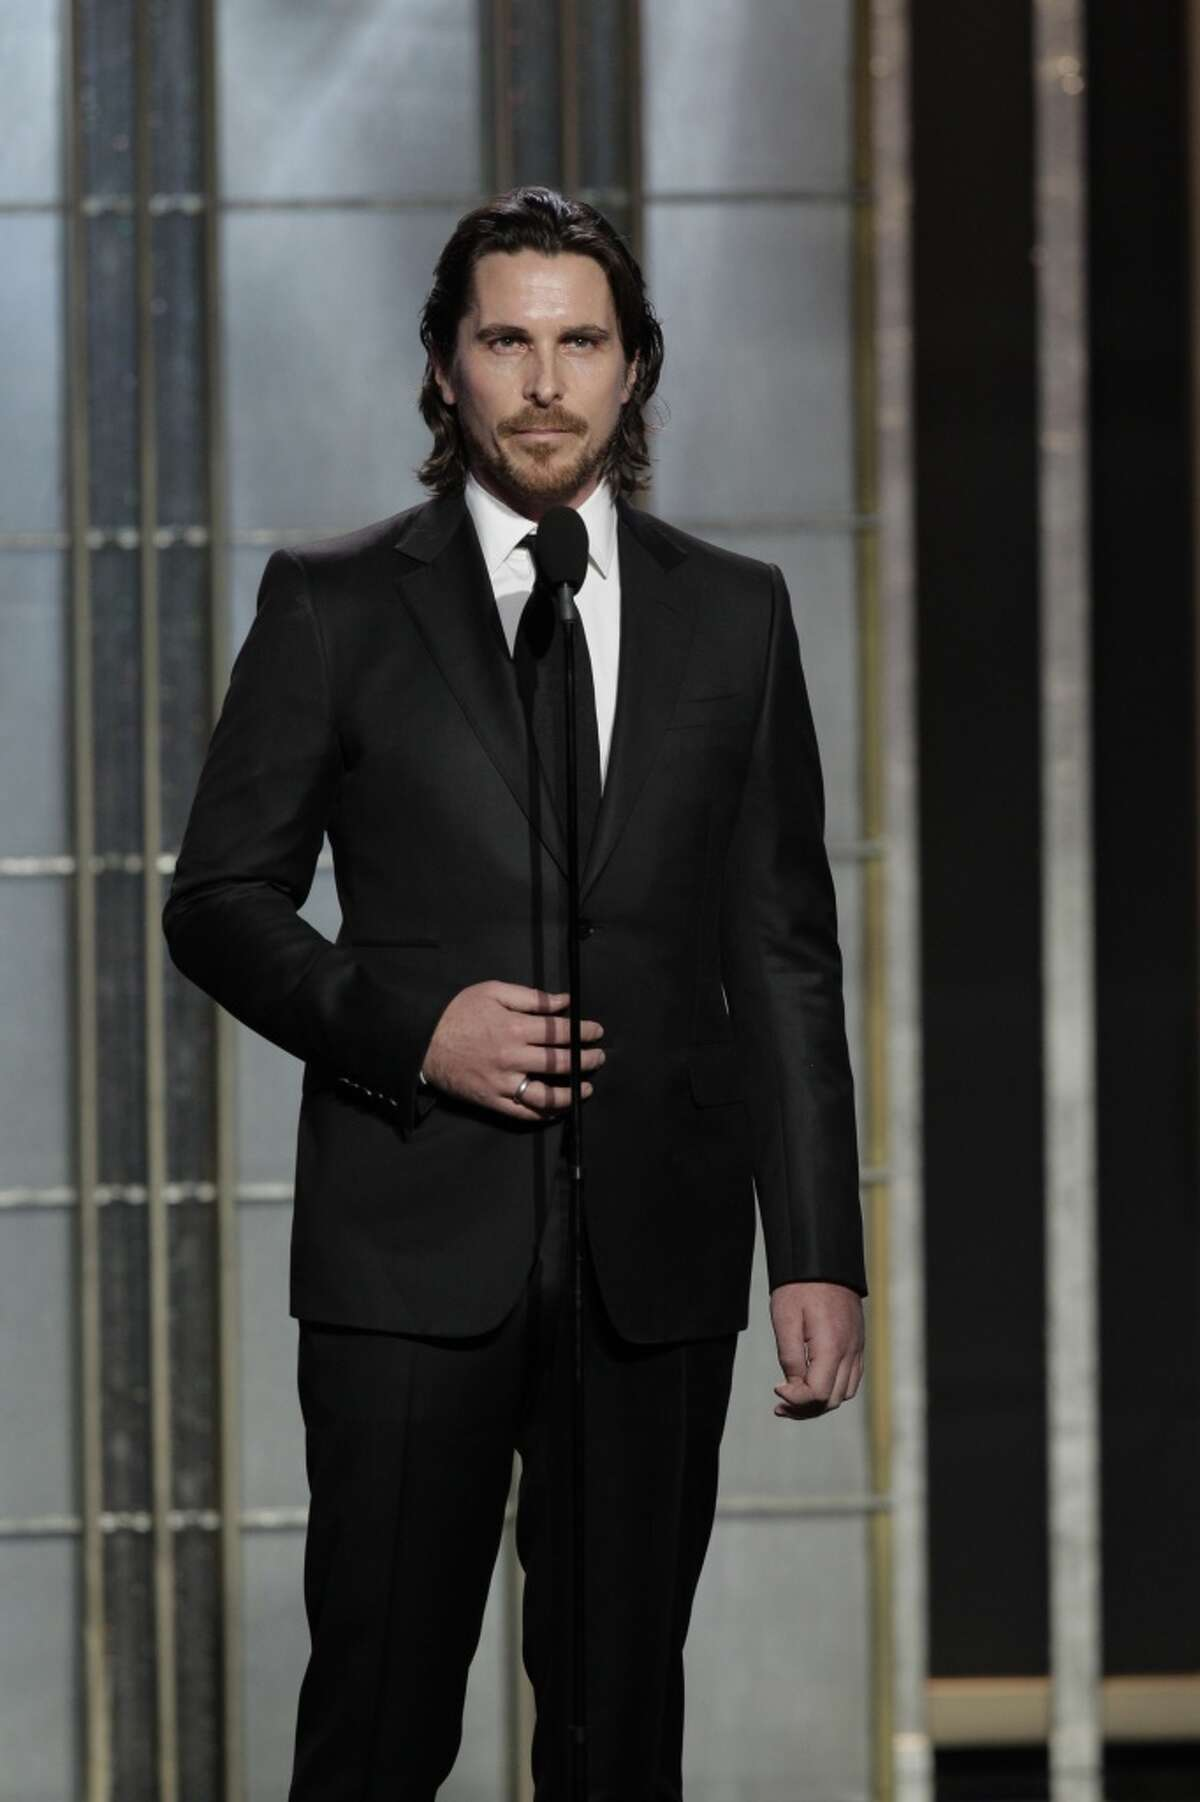 """Christian Bale gained over 40 pounds for his role as Dick Cheney in the film """"Backseat"""""""